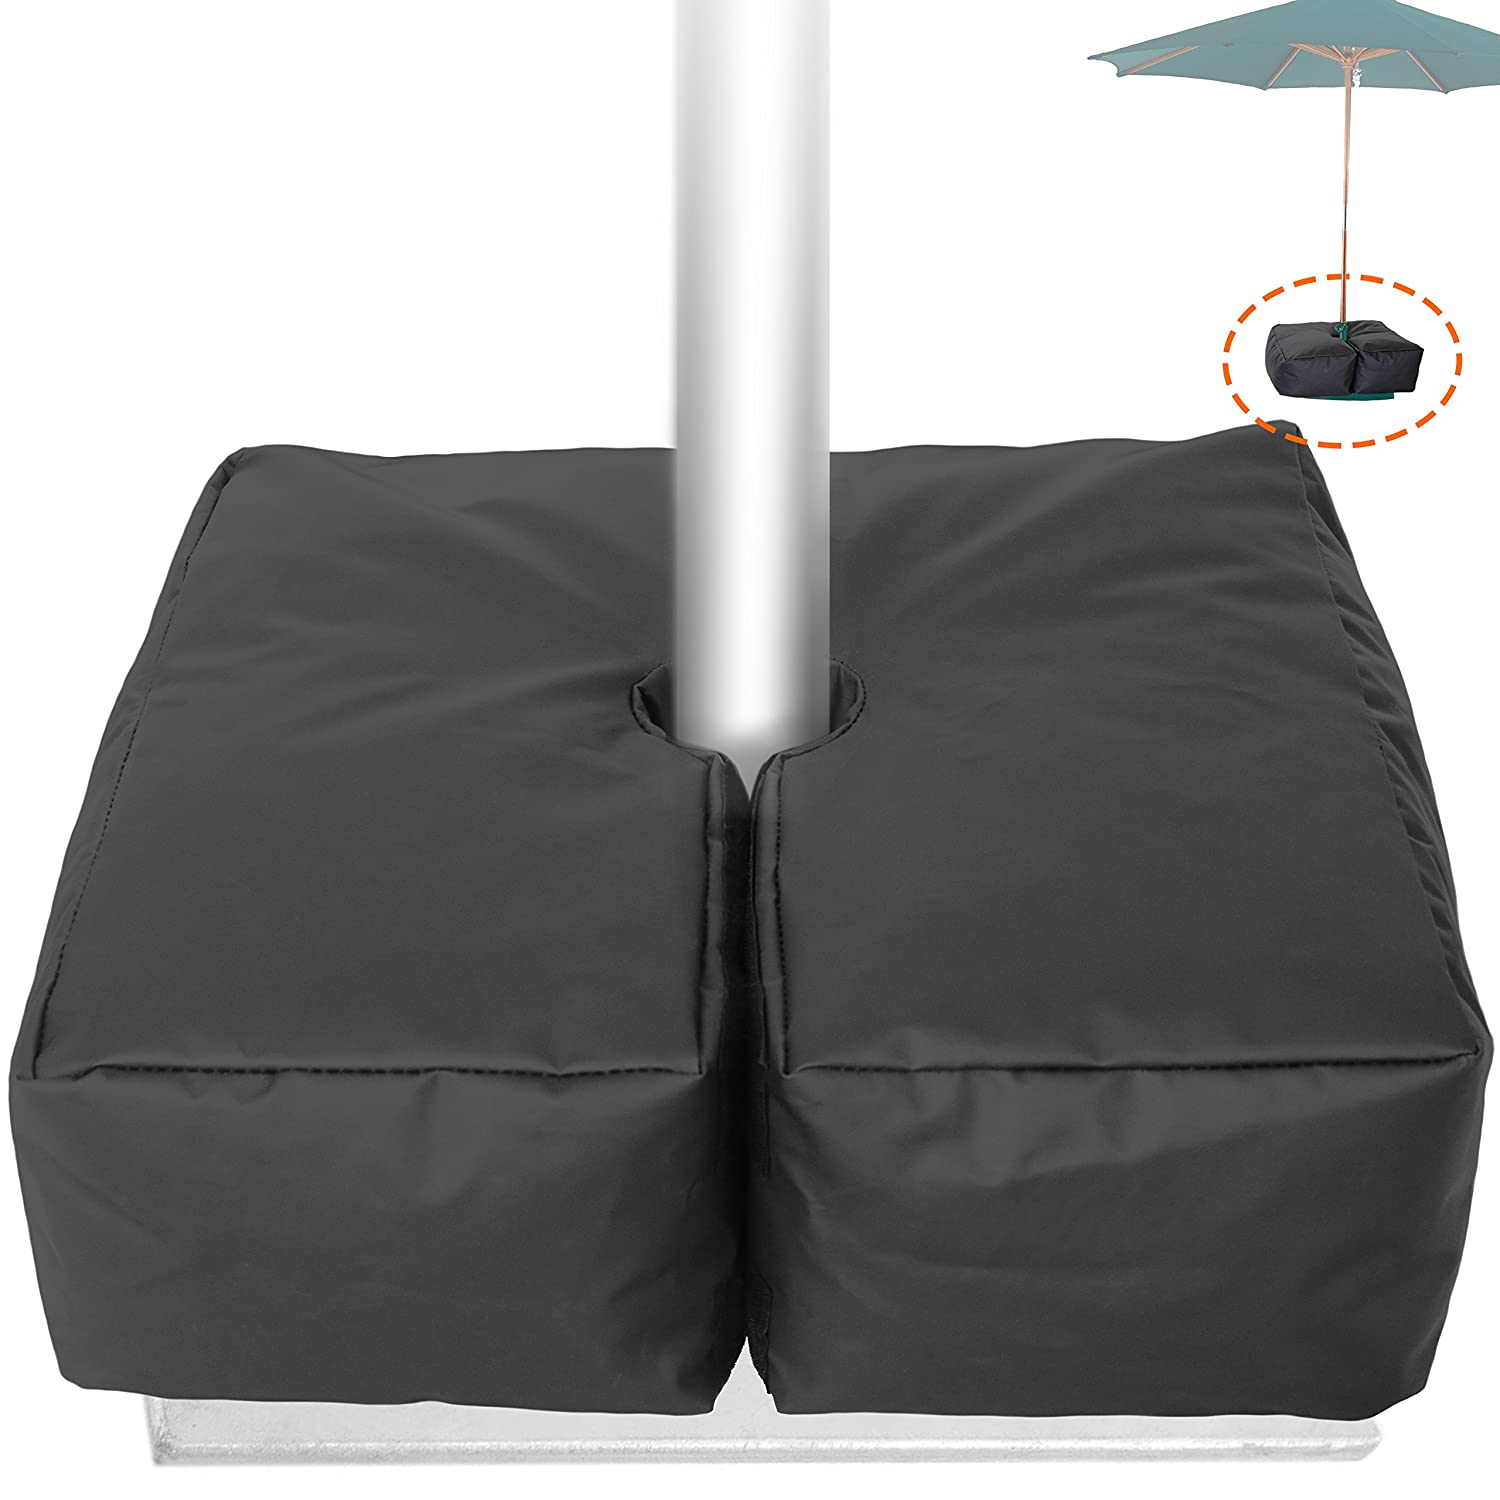 Weather Resistant Weights for Patio Umbrella Base - 19'' Square. for  Classic Outdoor Umbrellas, Hanging, Cantilever & Offset Models. - Amazon.com : Weather Resistant Weights For Patio Umbrella Base - 19